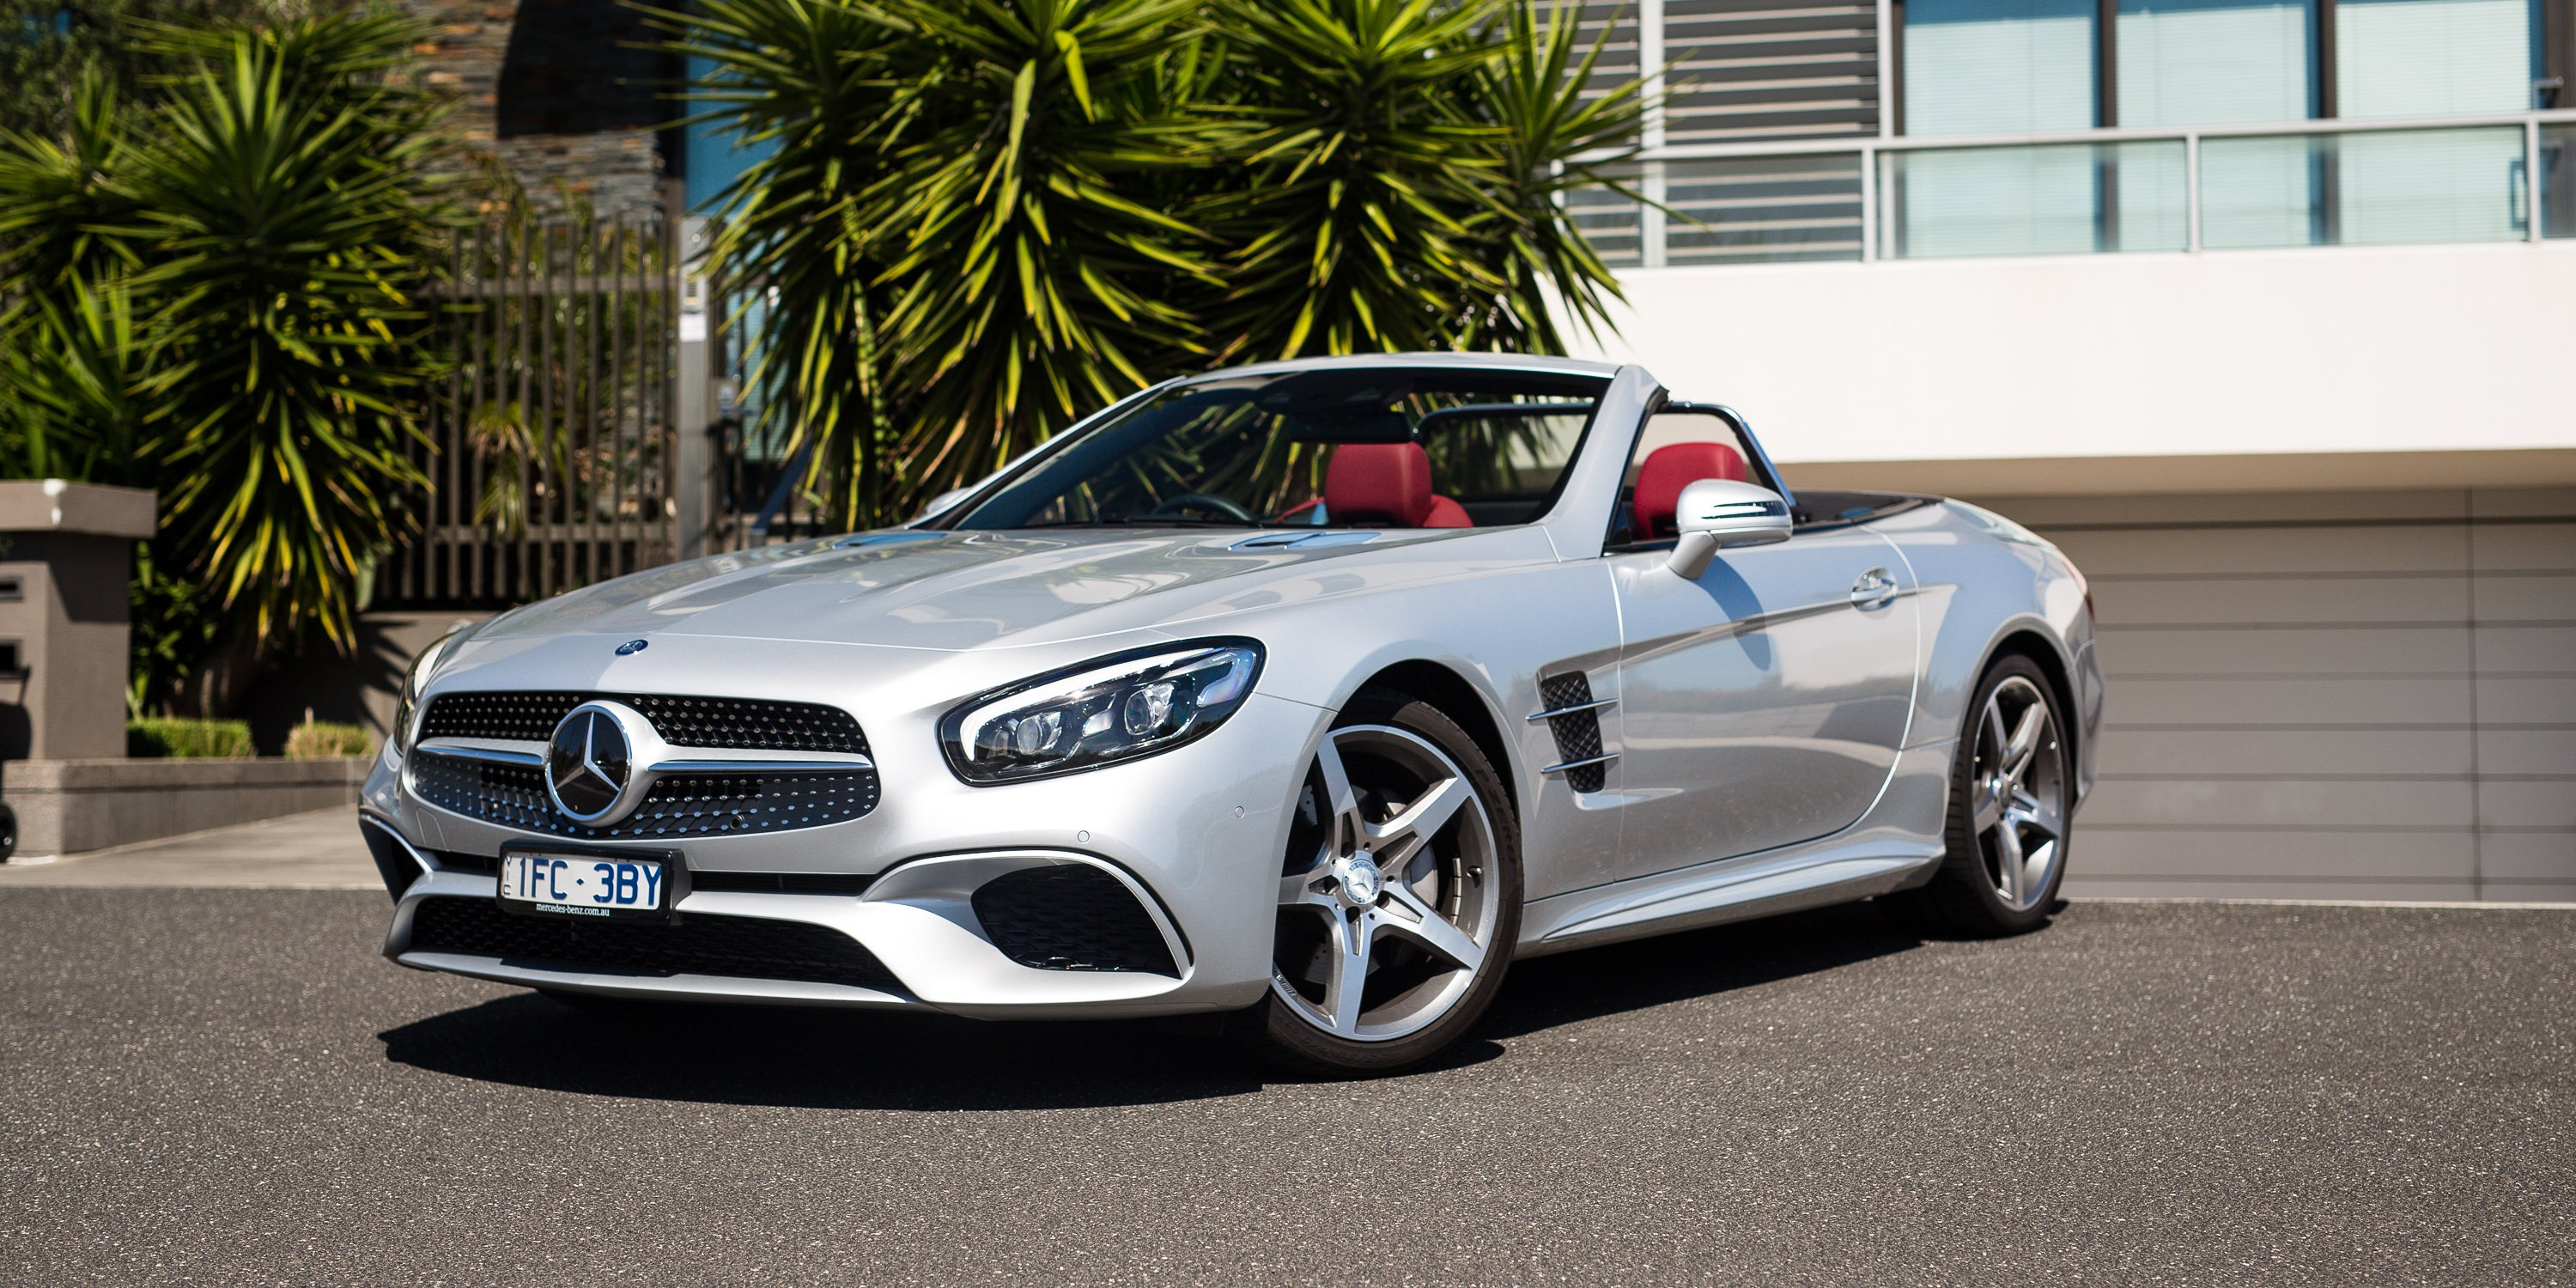 2017 mercedes benz sl400 review photos caradvice for Mercedes benz hybrid cars